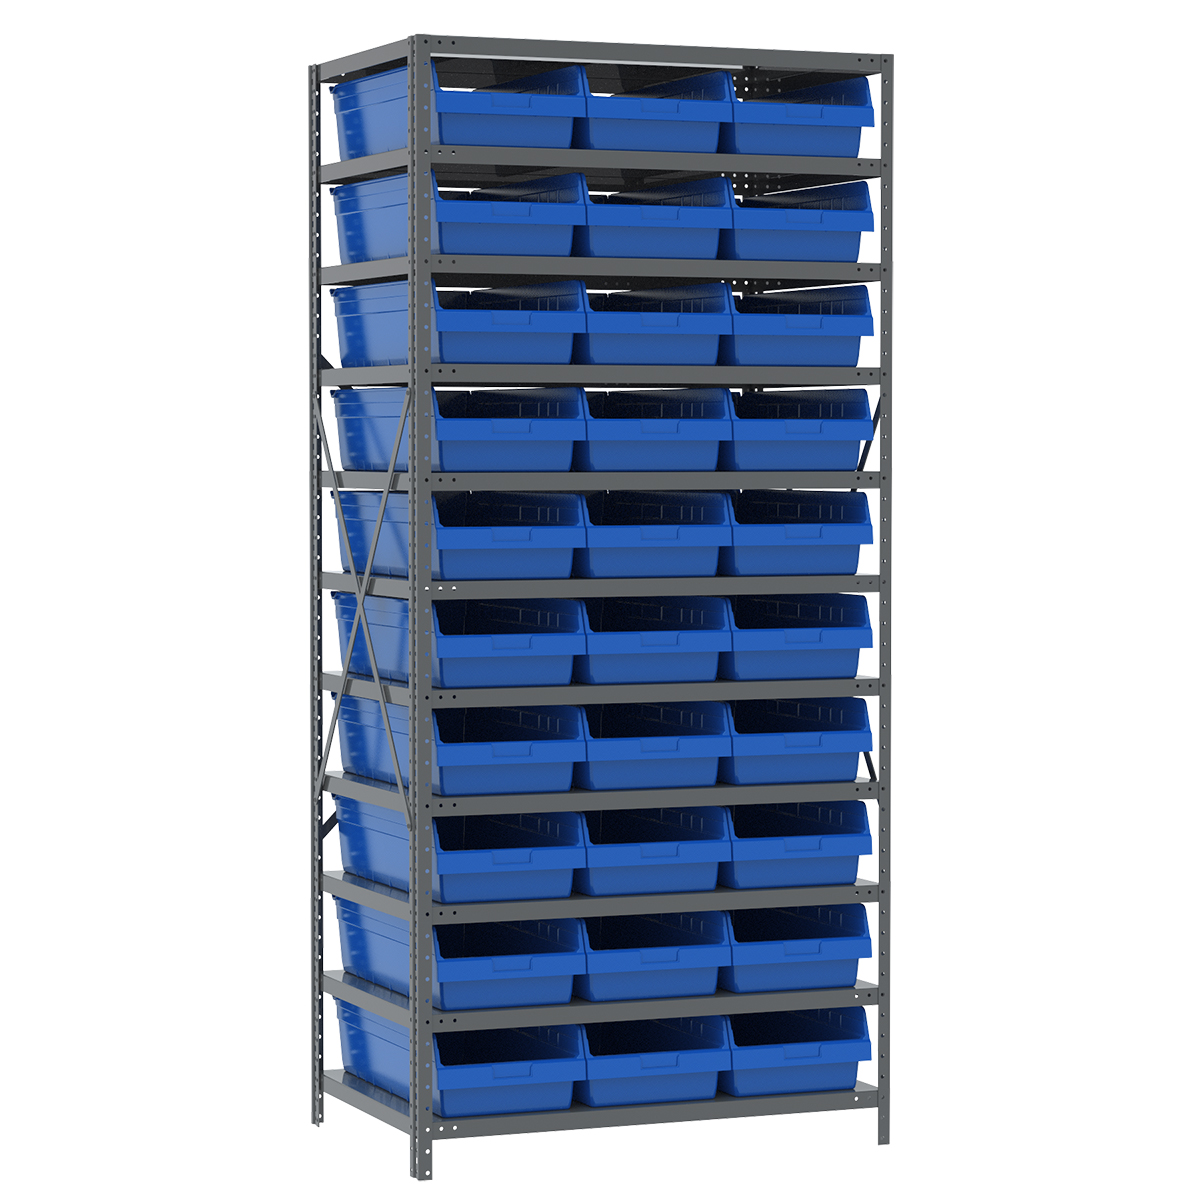 Steel Shelving Kit, 24x36x79, 30 Bins, Gray/Blue.  This item sold in carton quantities of 1.